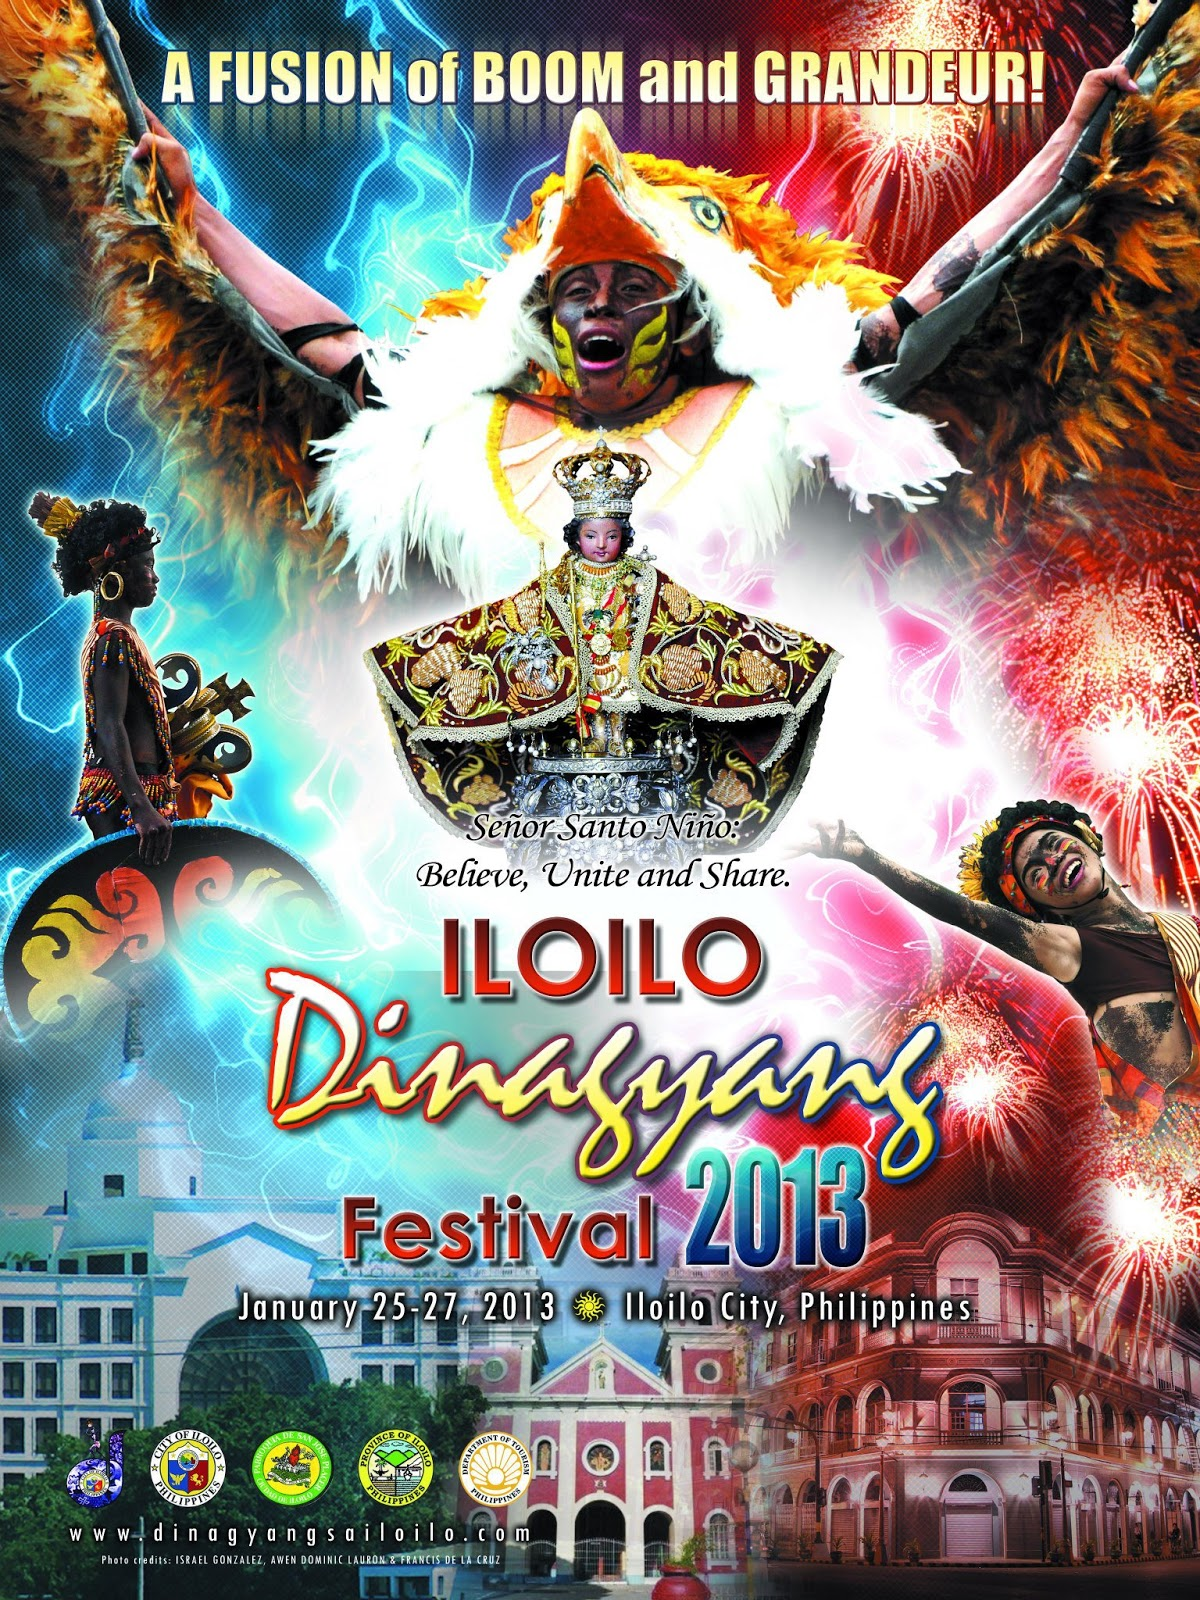 Miss Iloilo Dinagyang 2013 Formally Launched | RaMzKiE Productions